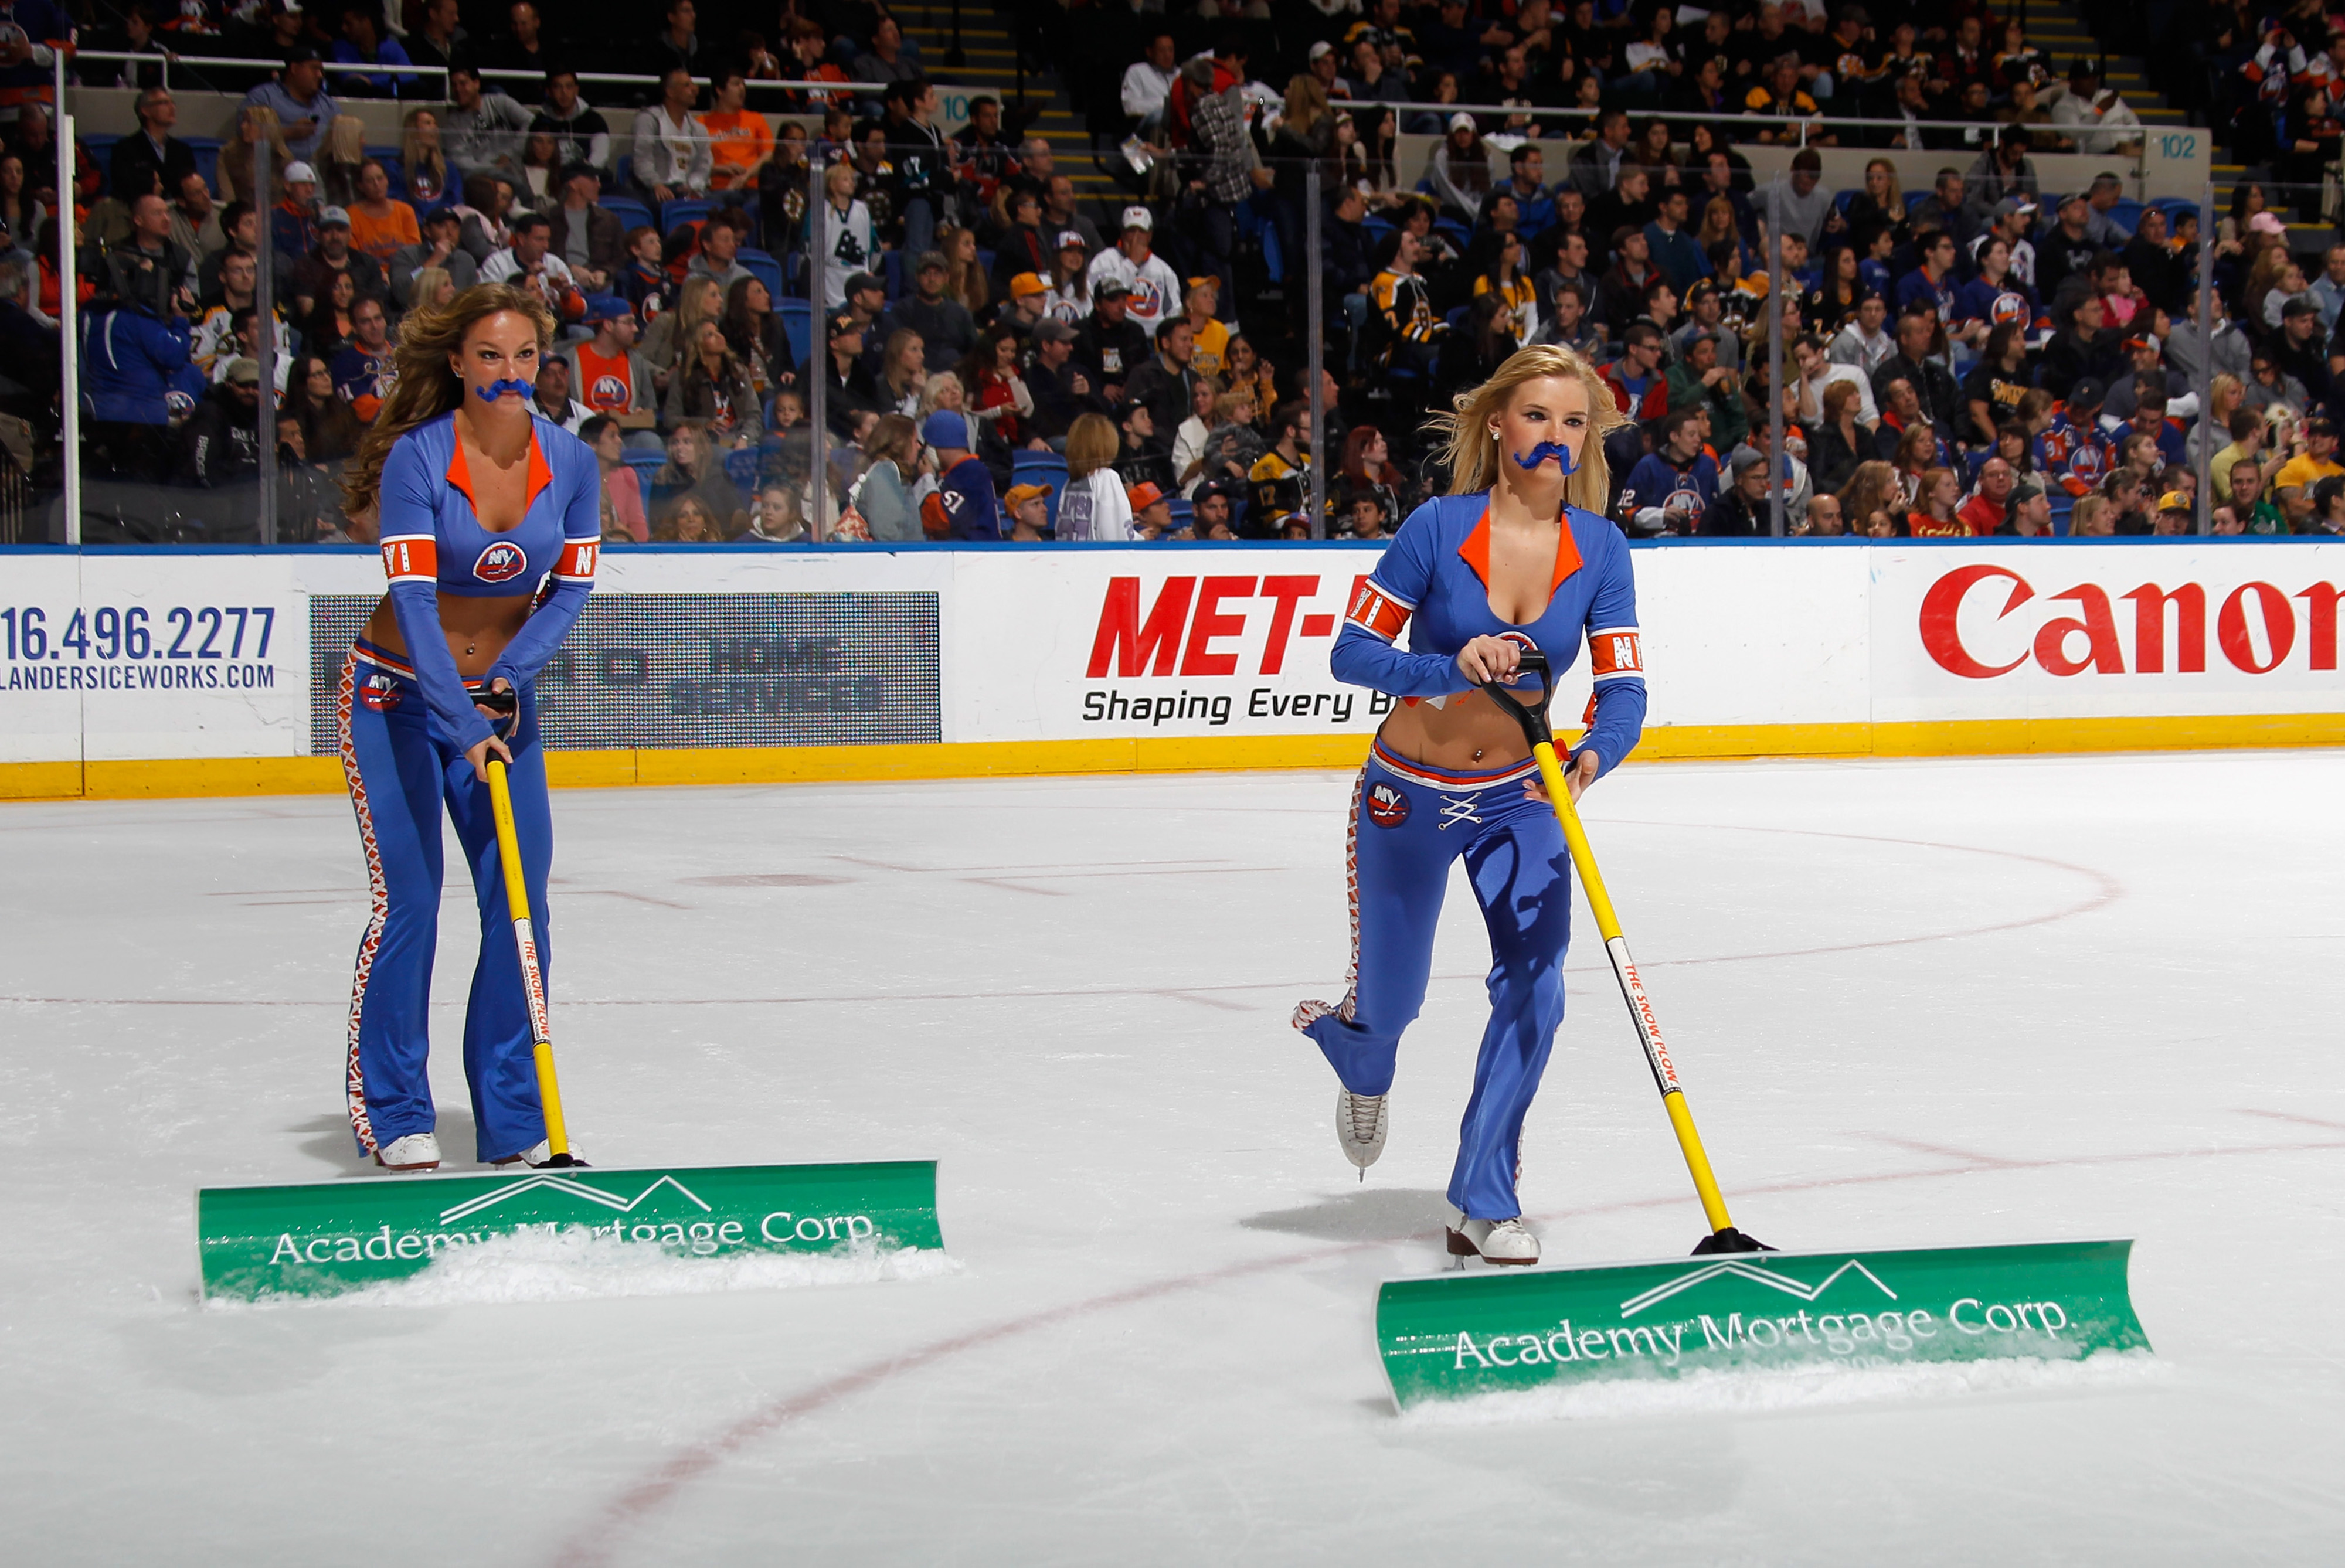 New York Islanders ice girls celebrate Movember by wearing fake mustaches during the game between the Isles and the Boston Bruins on November 2, 2013 in New York. (Photo by Bruce Bennett/Getty Images)